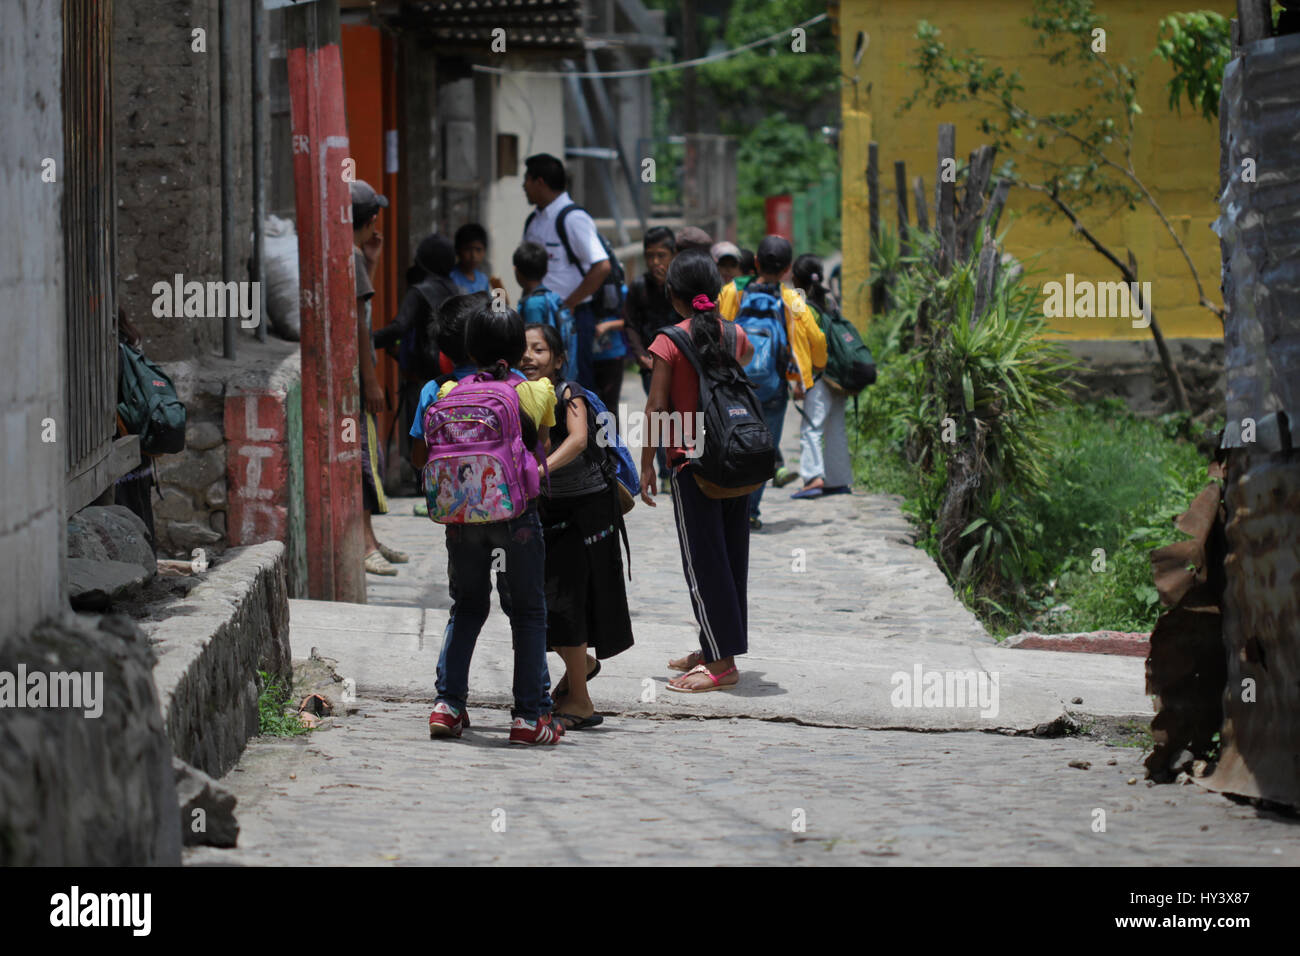 Kids playing after school in guatemala vilalge - Stock Image